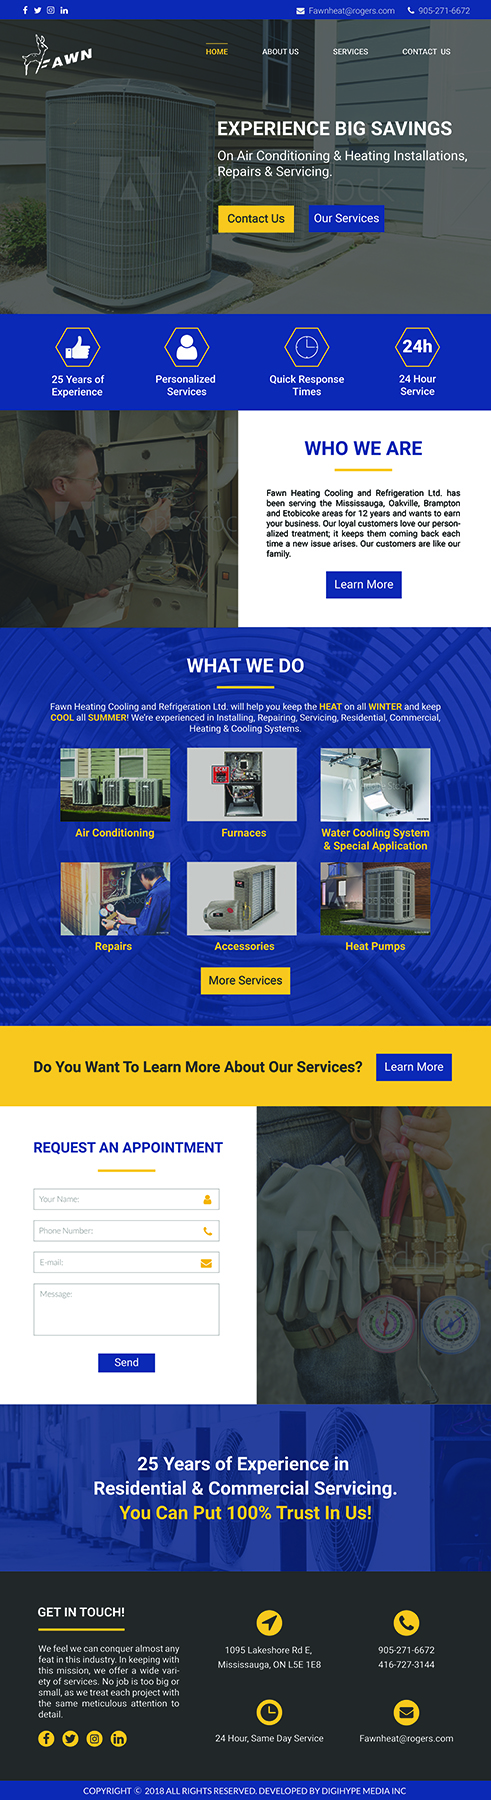 AC, HVAC and Heating Repair Company in Mississauga (Website design mockup)s